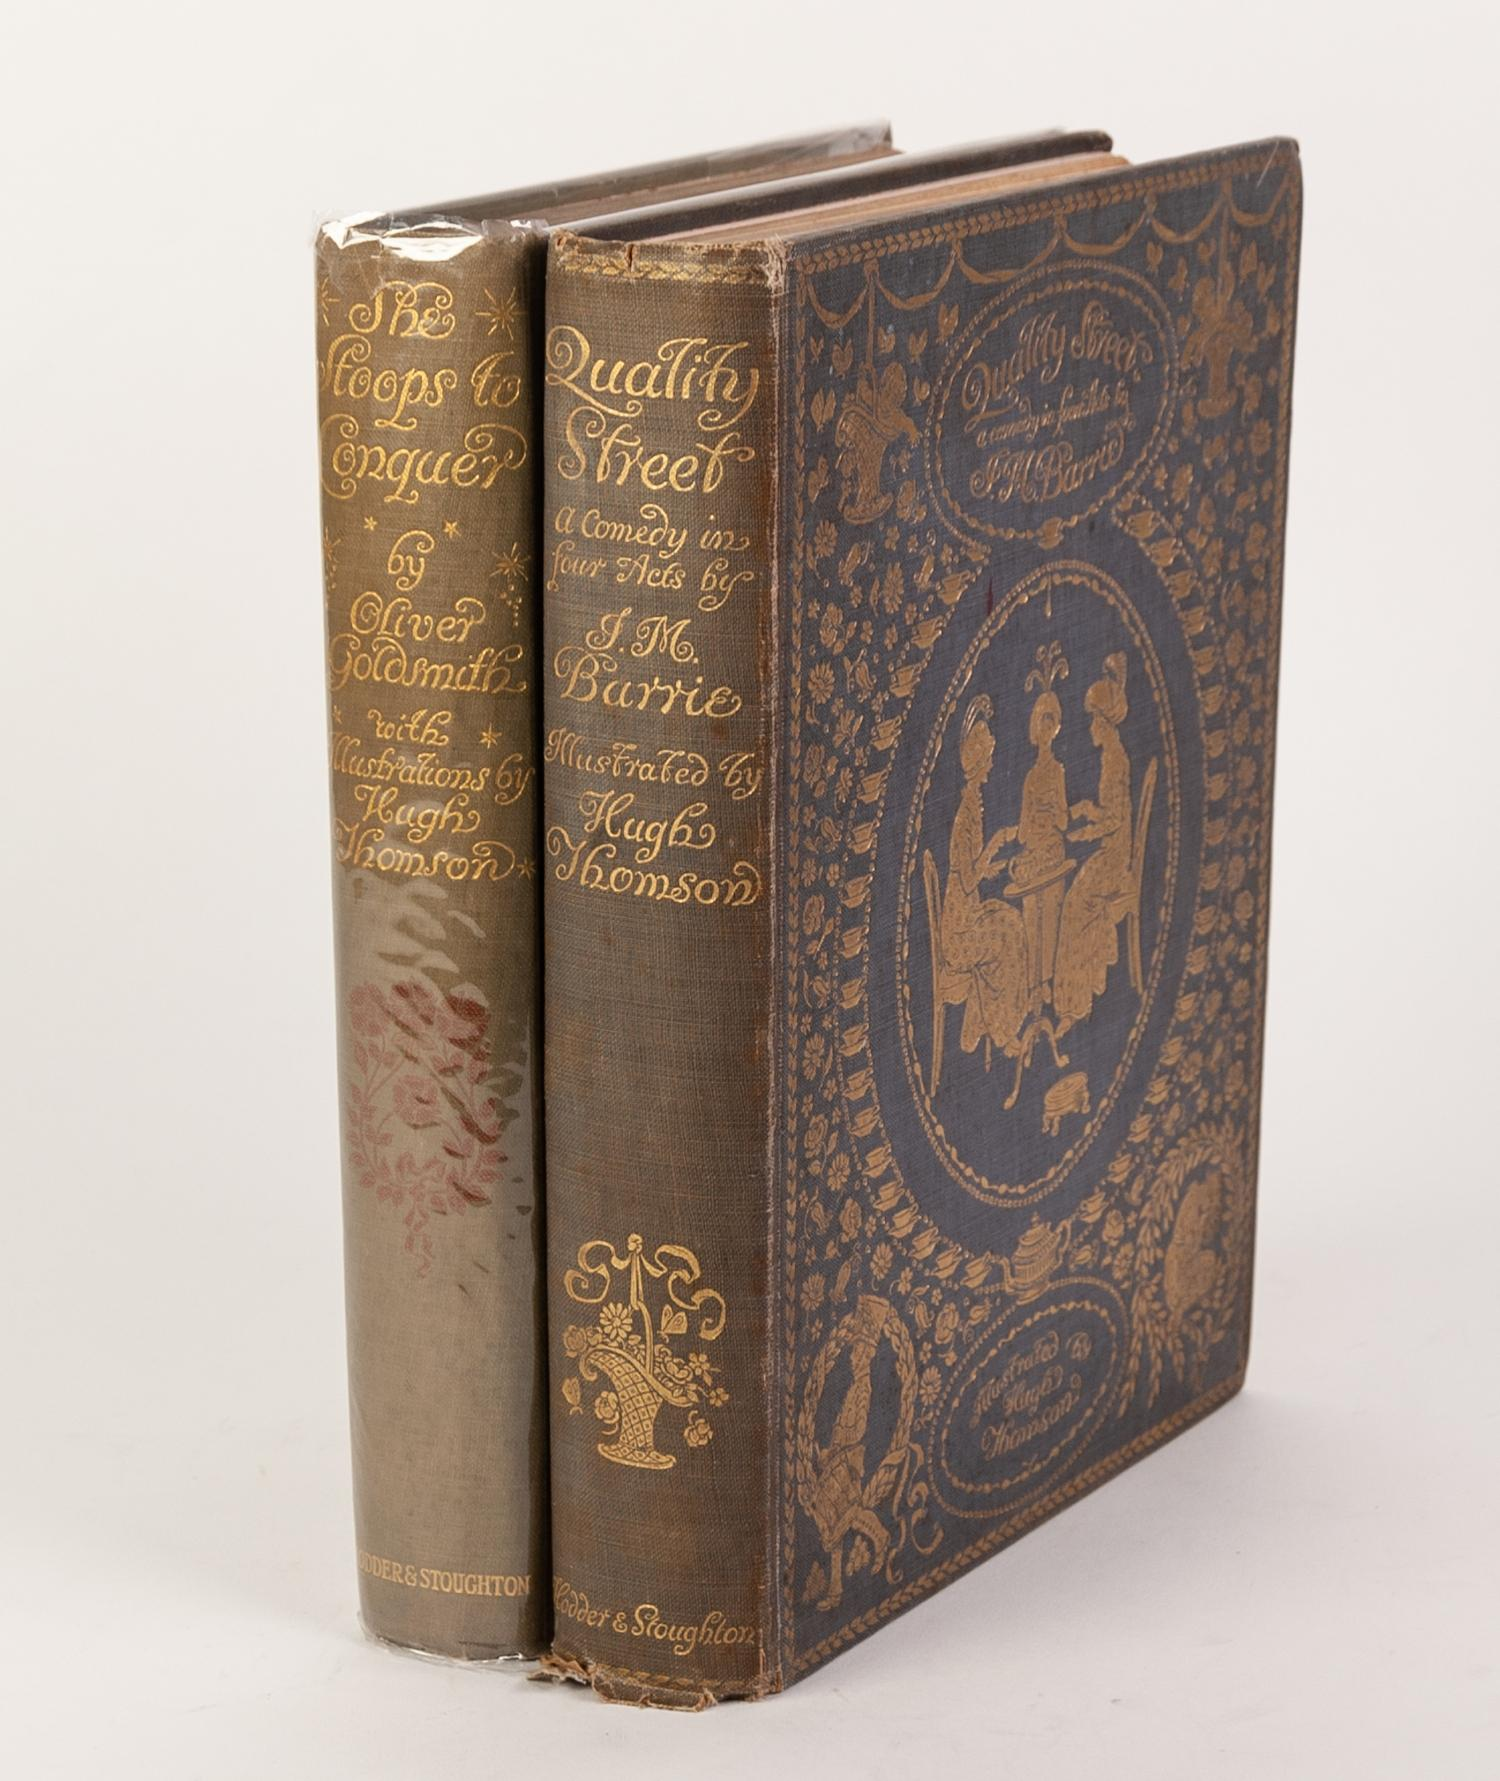 Lot 44 - HUGH THOMSON ILLUSTRATIONS - GOLDSMITH'S SHE STOOPS TO CONQUER with twenty five coloured plates,